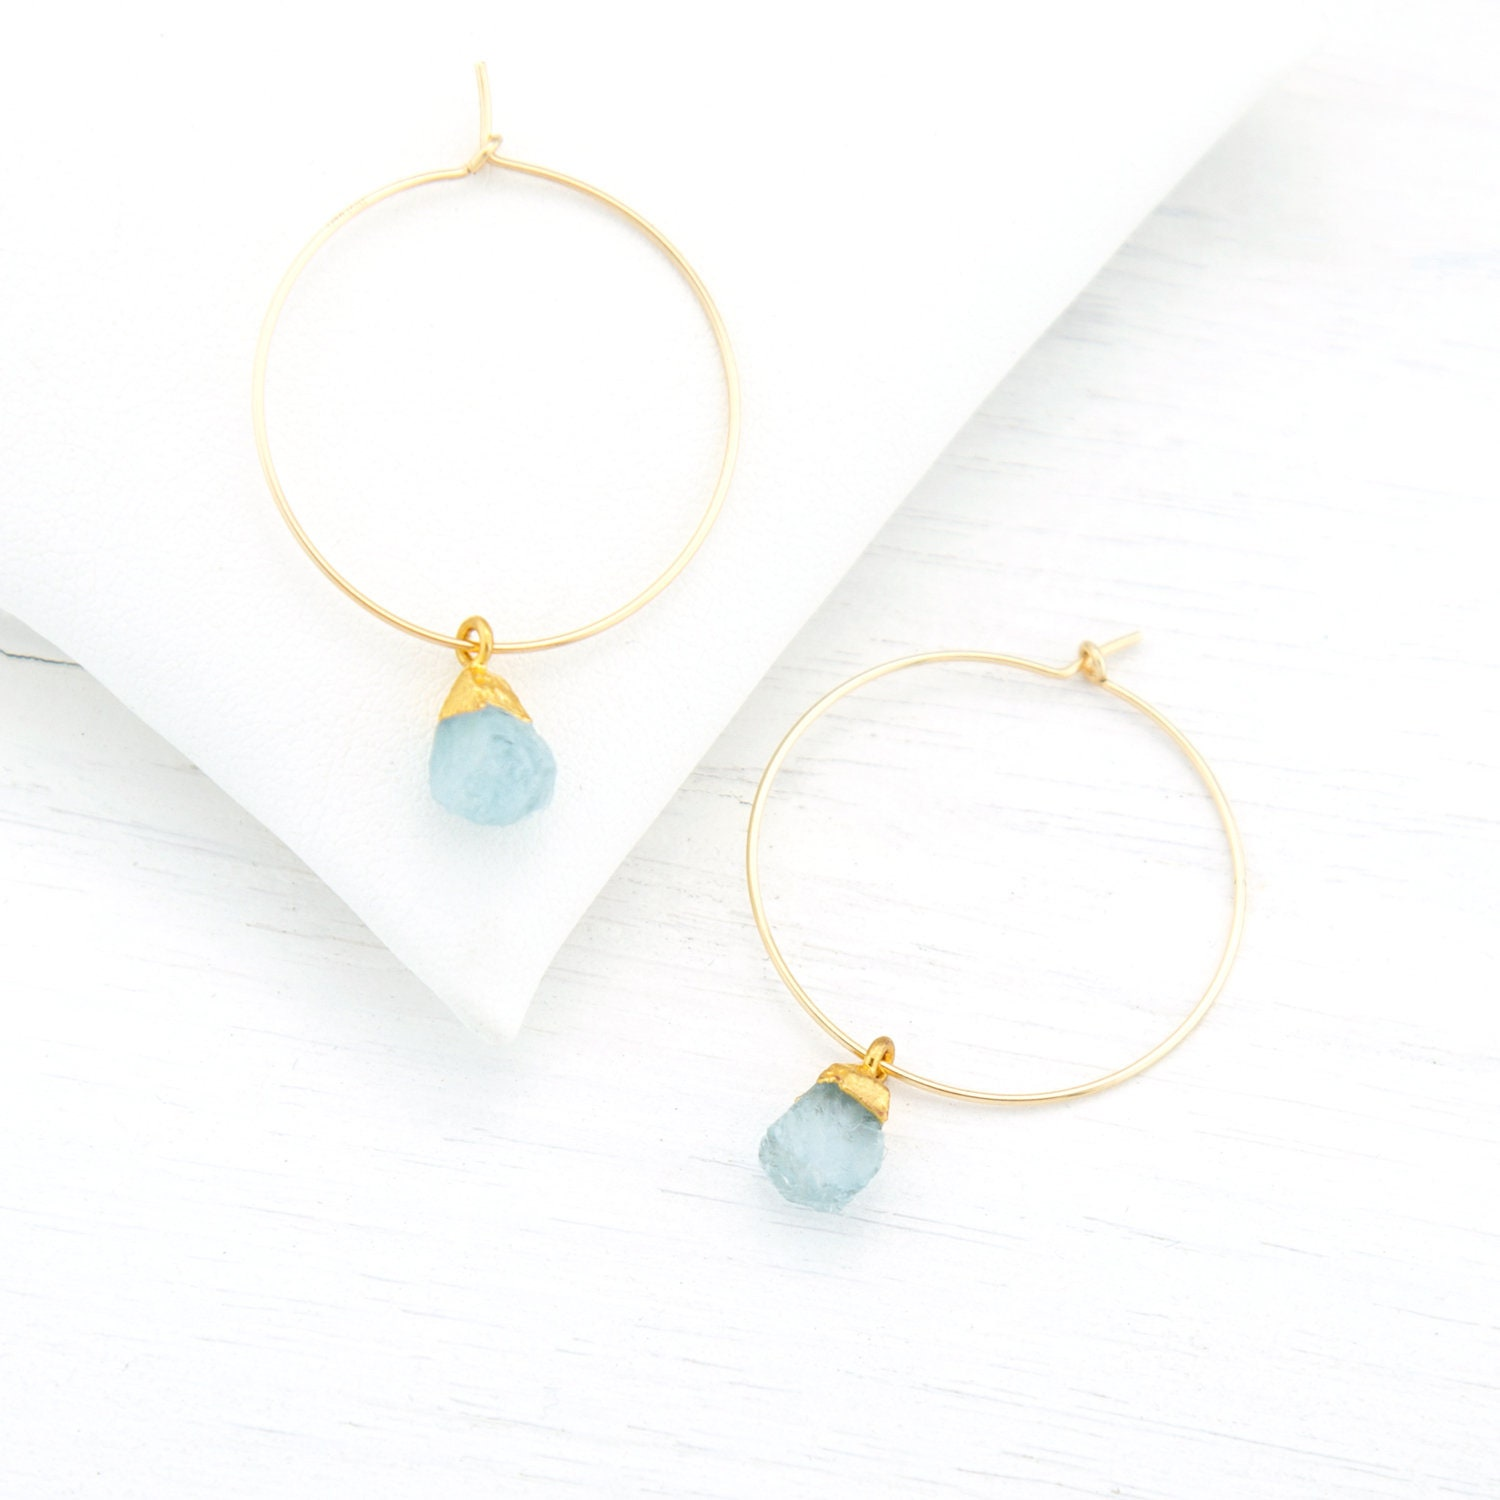 aquamarine tear shower listing fullxfull gemstone drop il natural minimalist circle gift gemstones delicate genuine bridal earrings